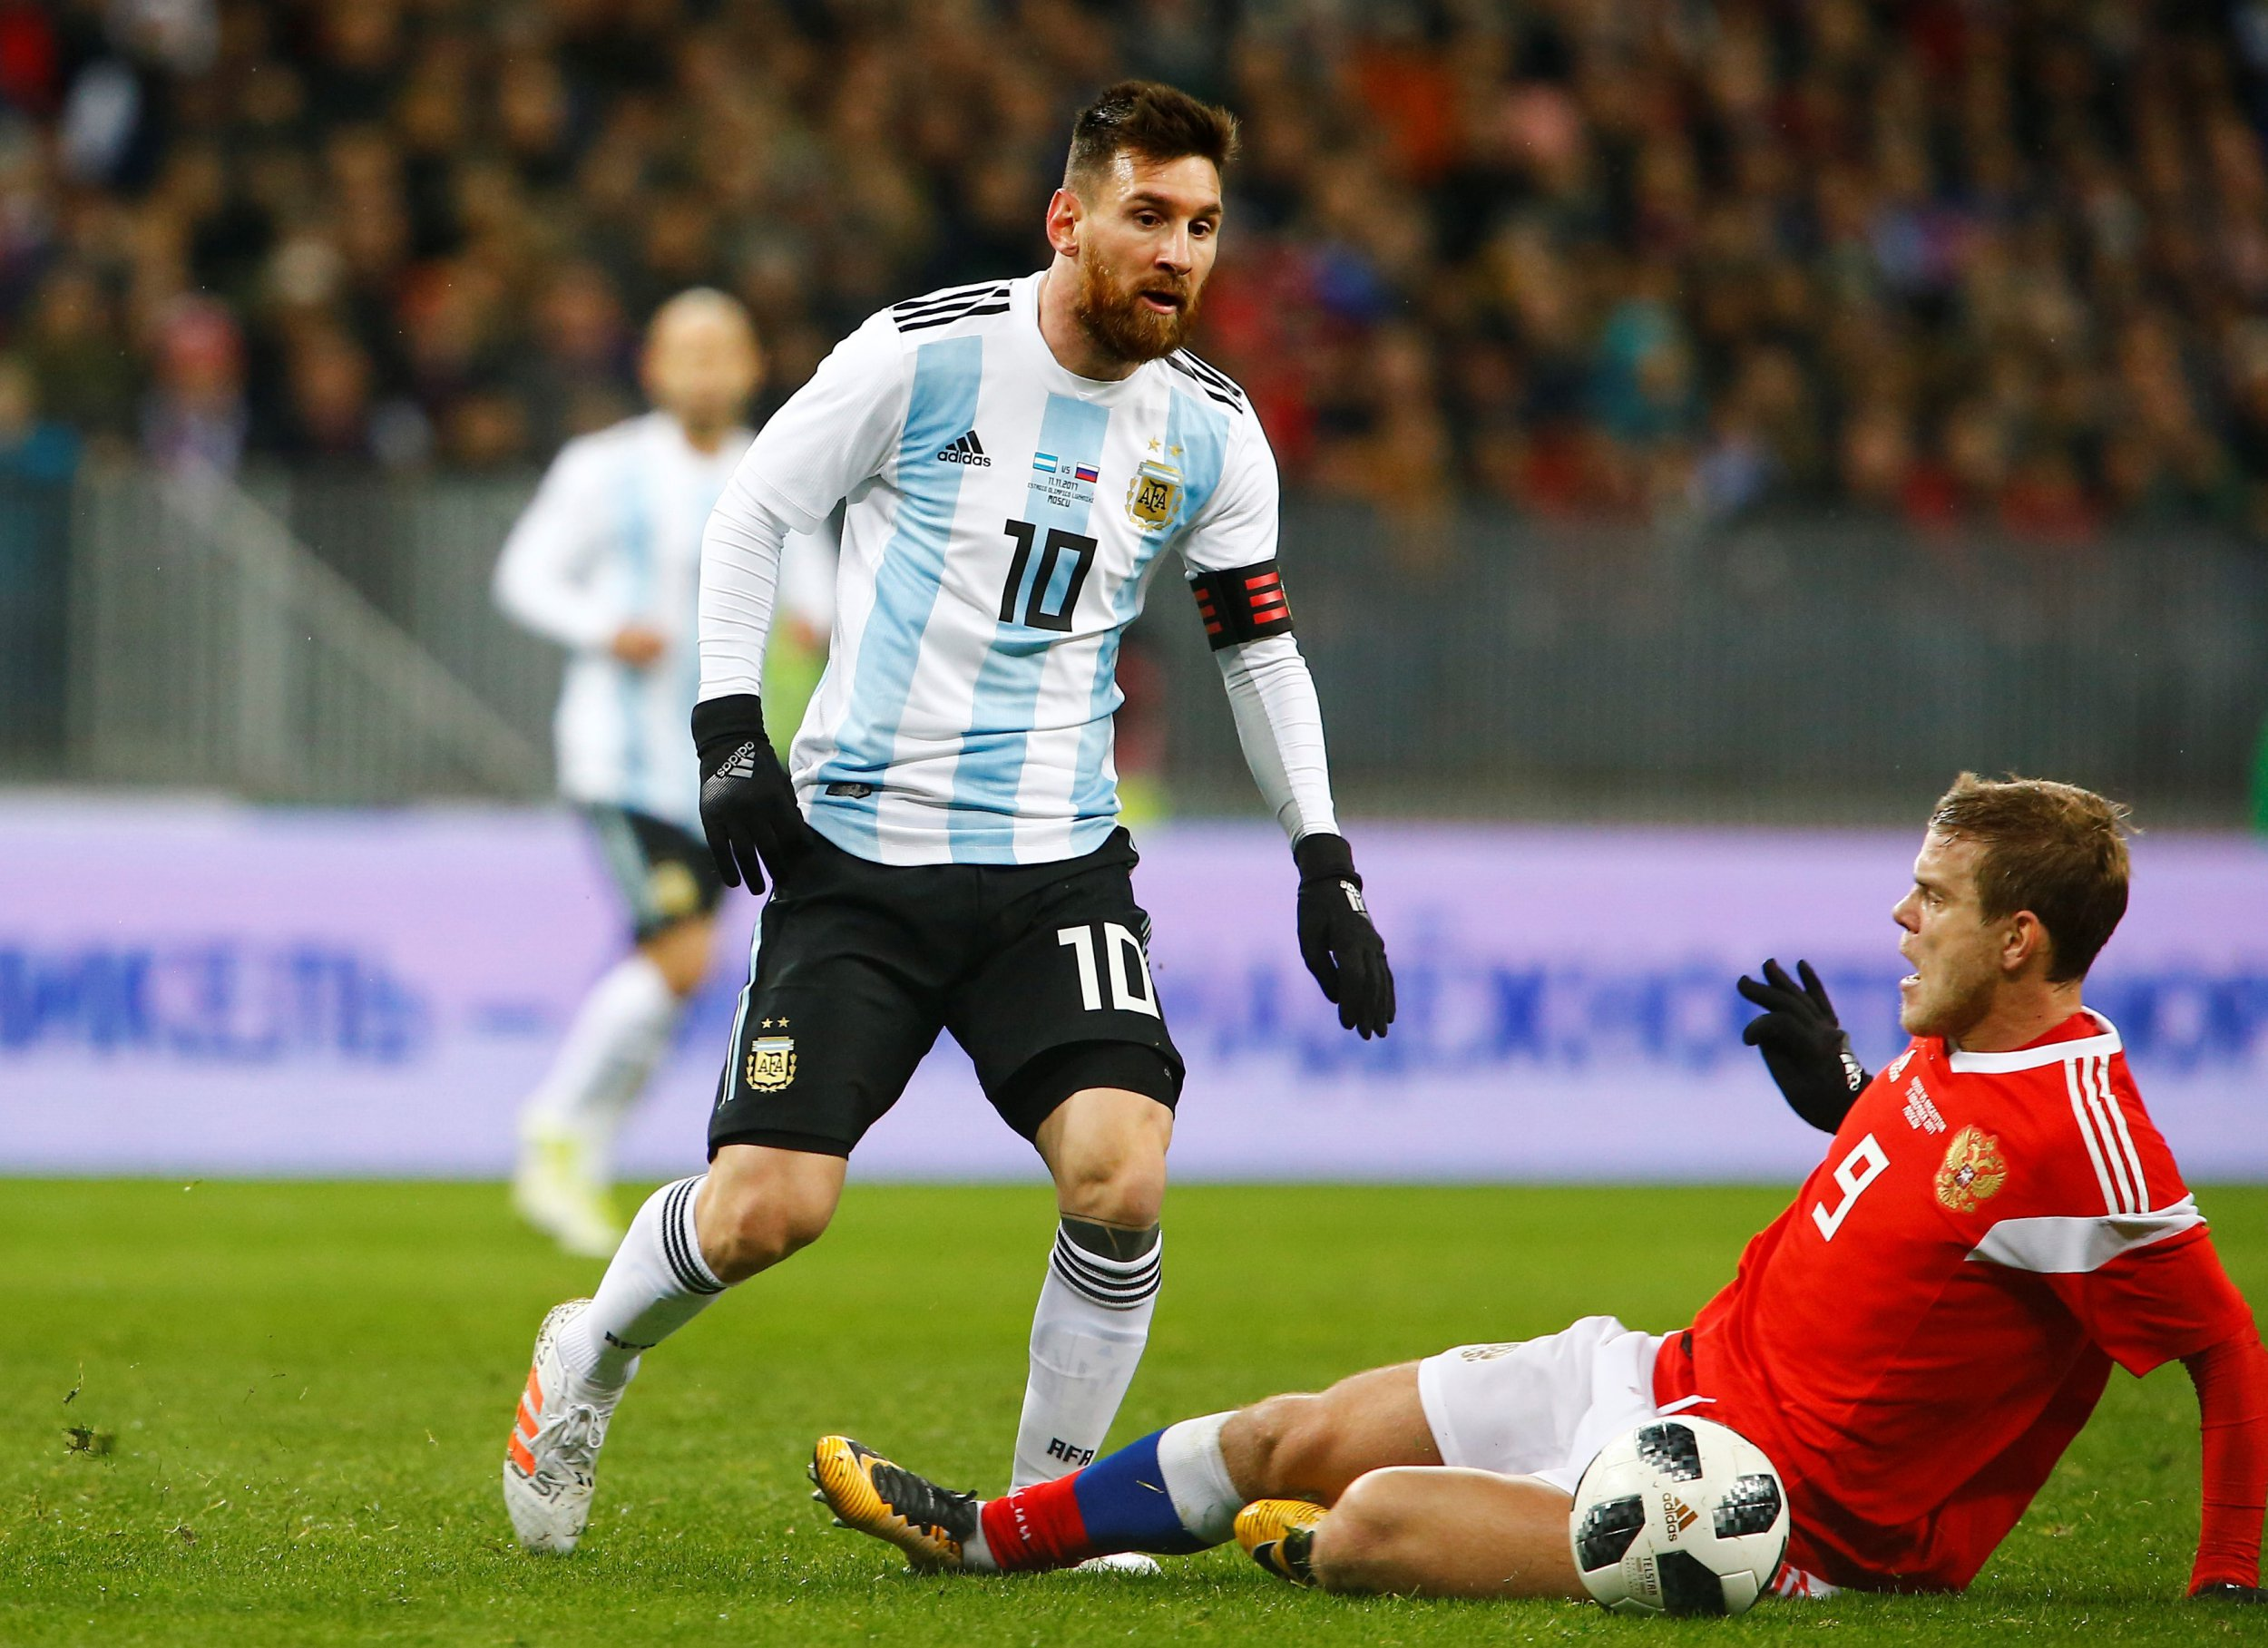 Lionel Messi 'held captive' by Isis jihadi in poster promoting terror at Russia World Cup